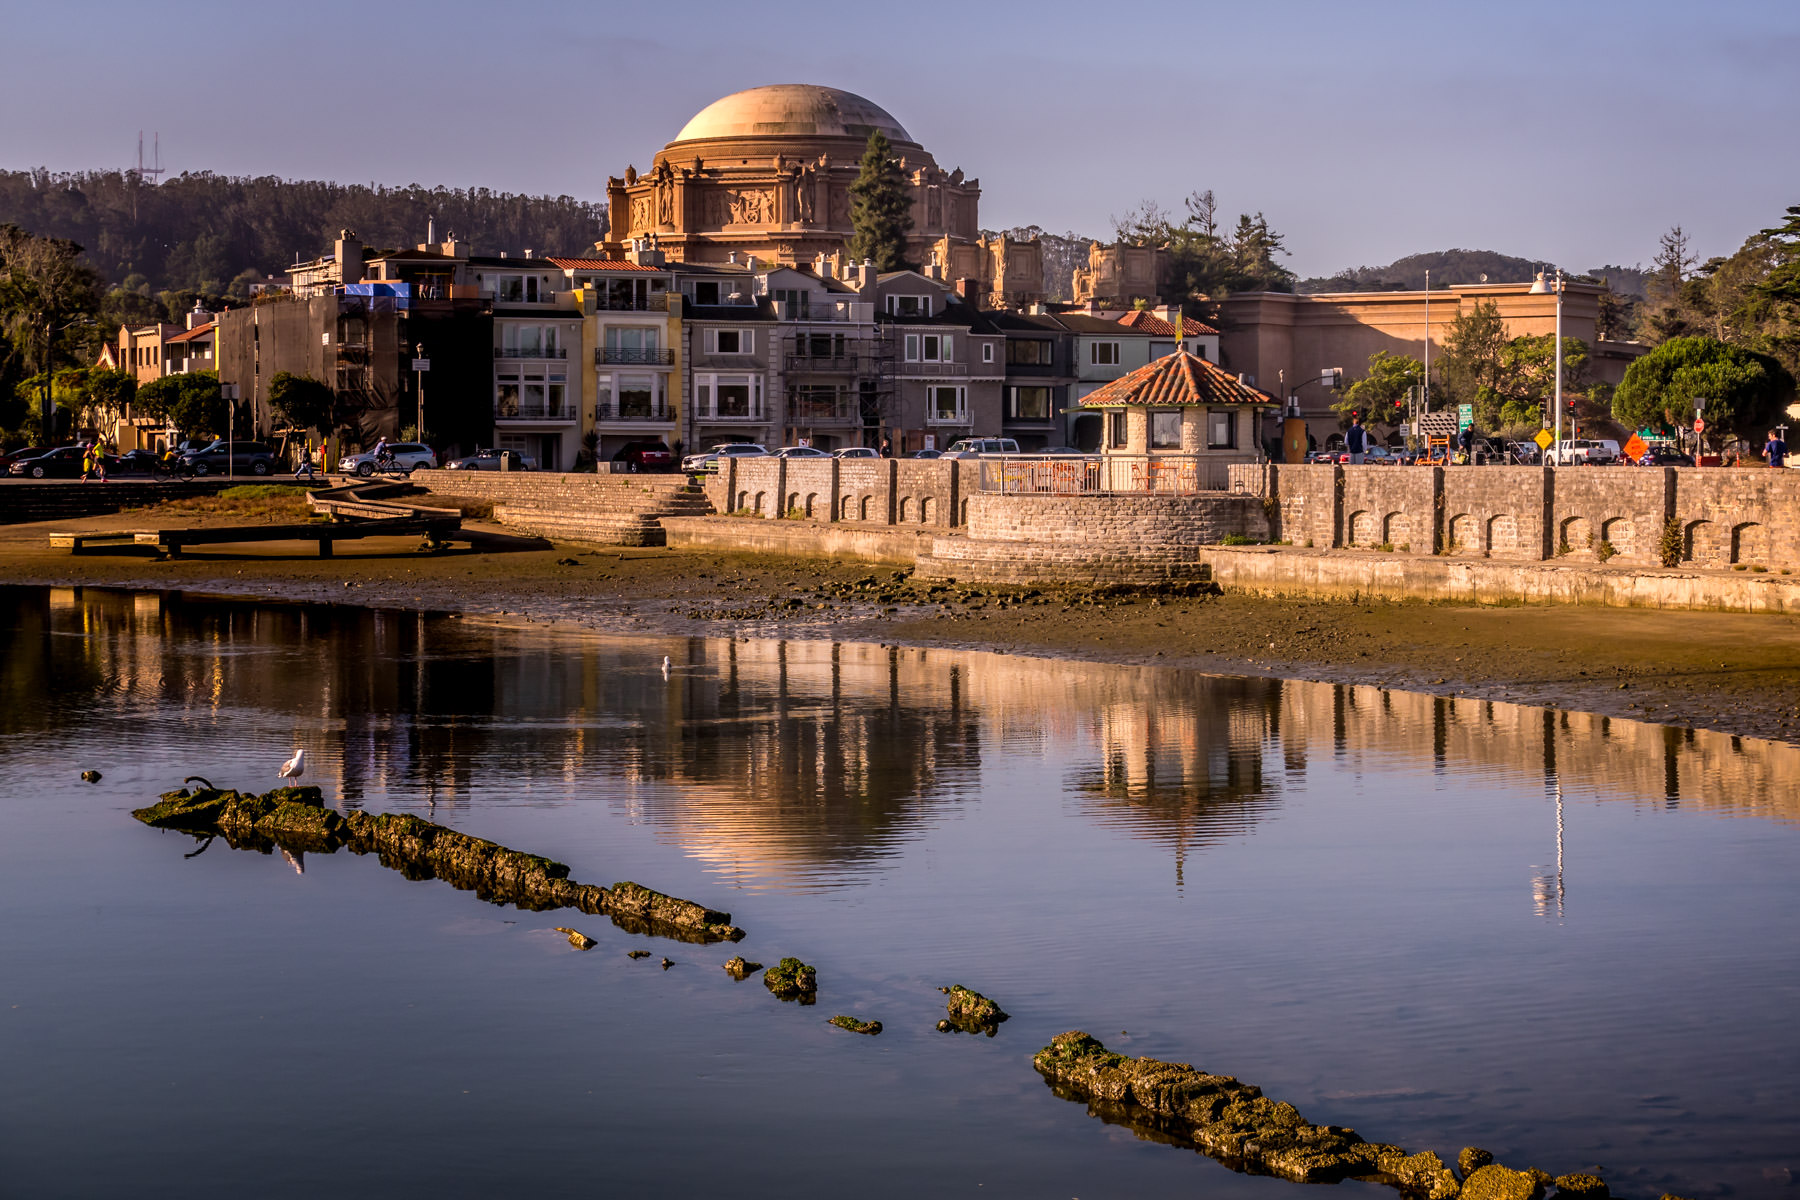 San Francisco's Palace of Fine Arts rises above the surrounding Marina District neighborhood as seen from nearby Crissy Field.